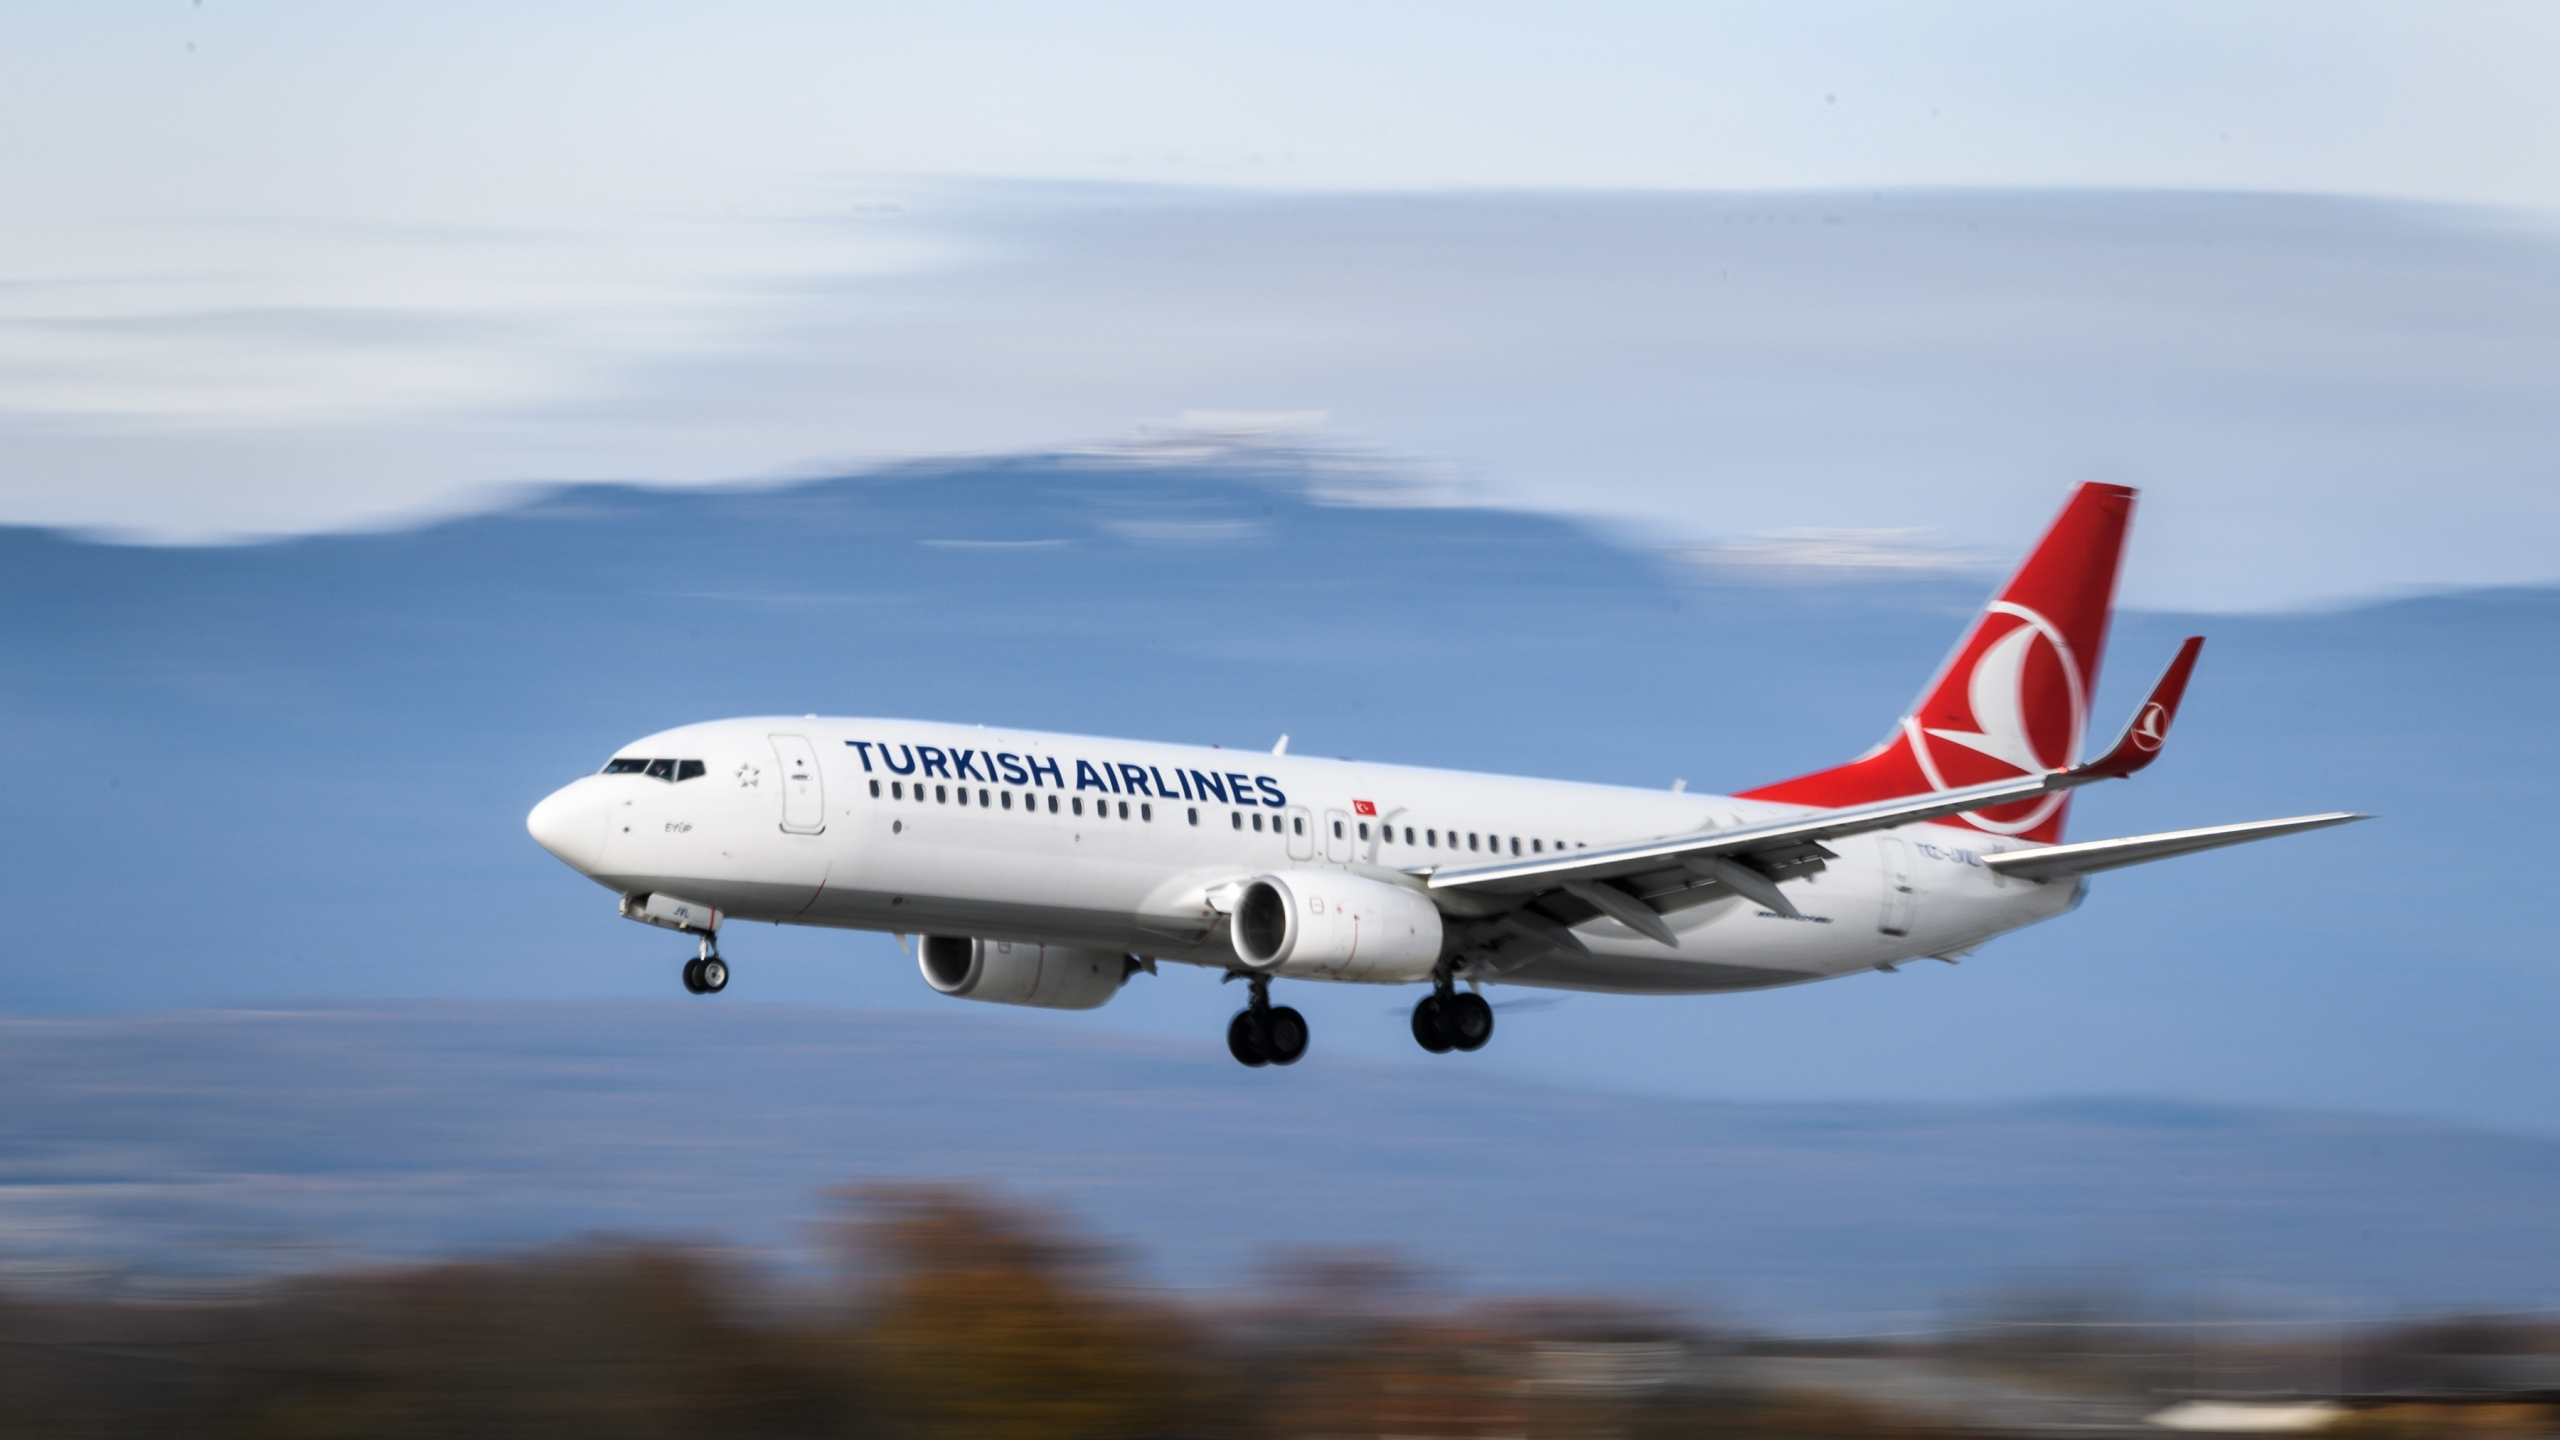 A Boeing 737-800 commercial plane registration TC-JVL of Turkish Airlines is seen landing at Geneva Airport on November 20, 2017 in Geneva. (Credit: Fabrice Coffrini/AFP/Getty Images)